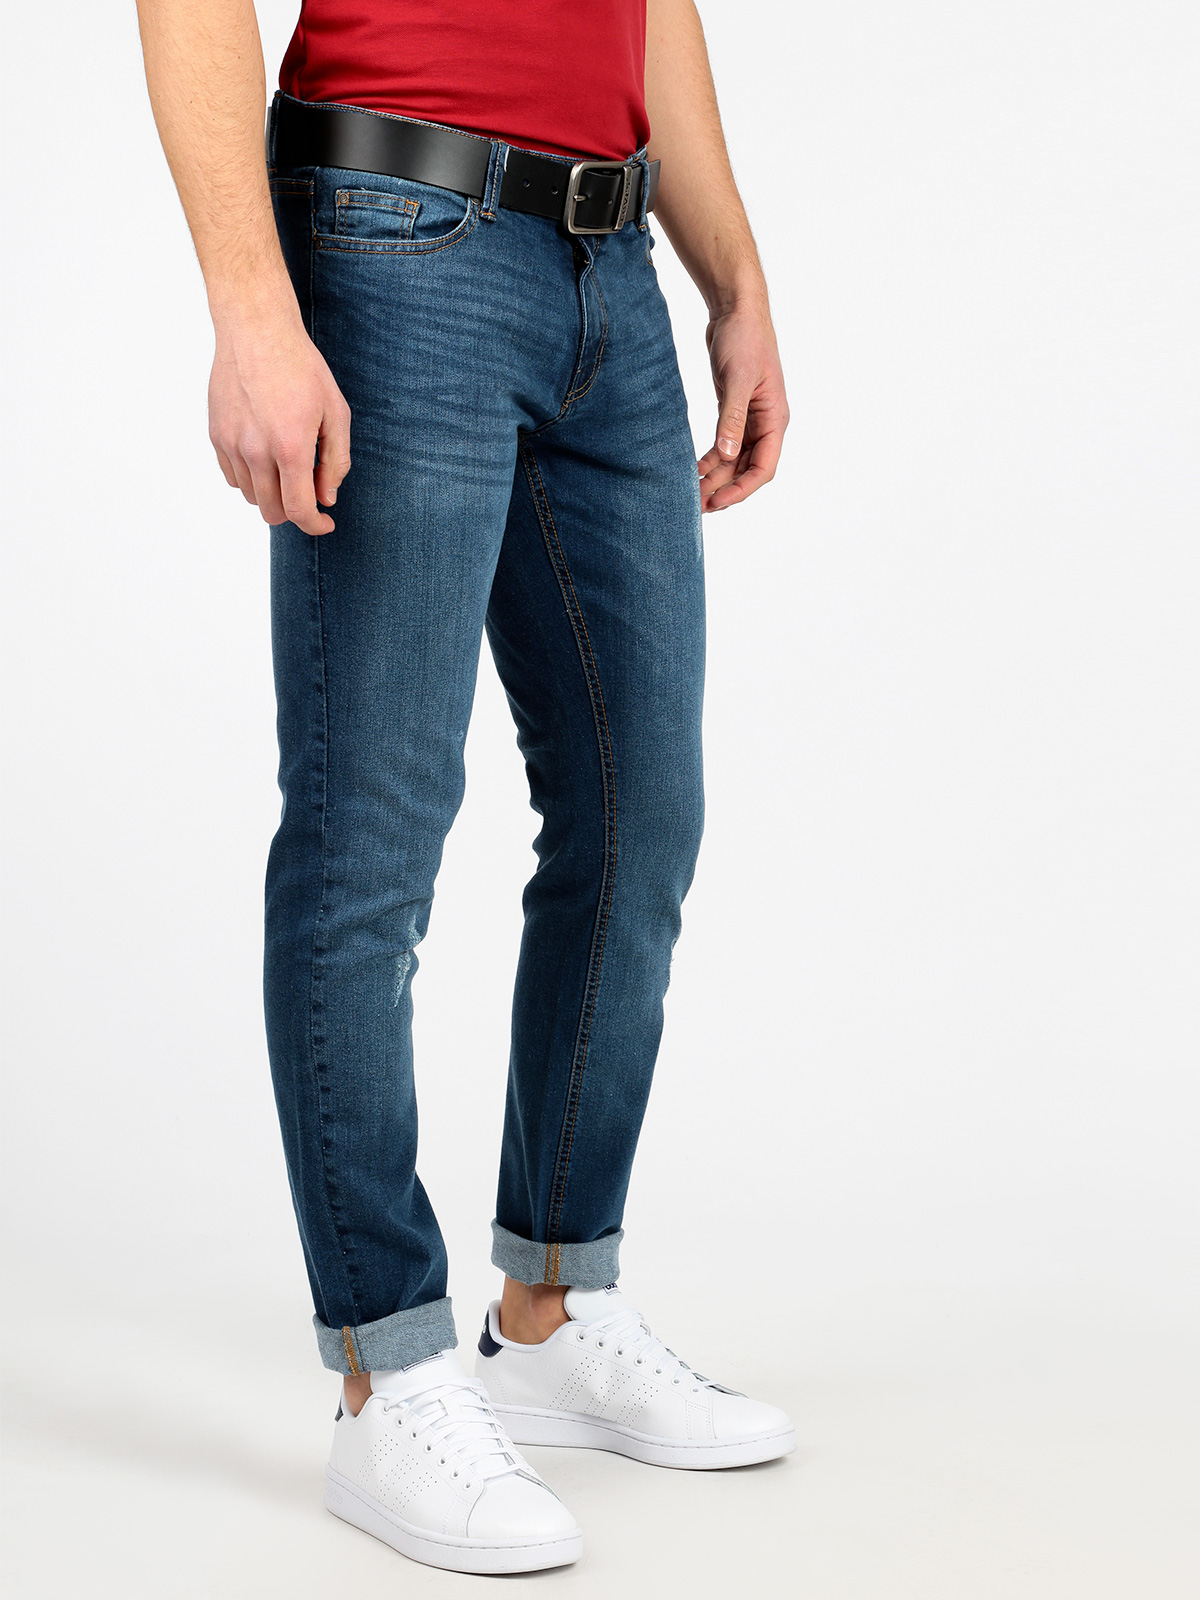 THE PEOPLE REP Men's Blue Casual Comfort Denim Pants